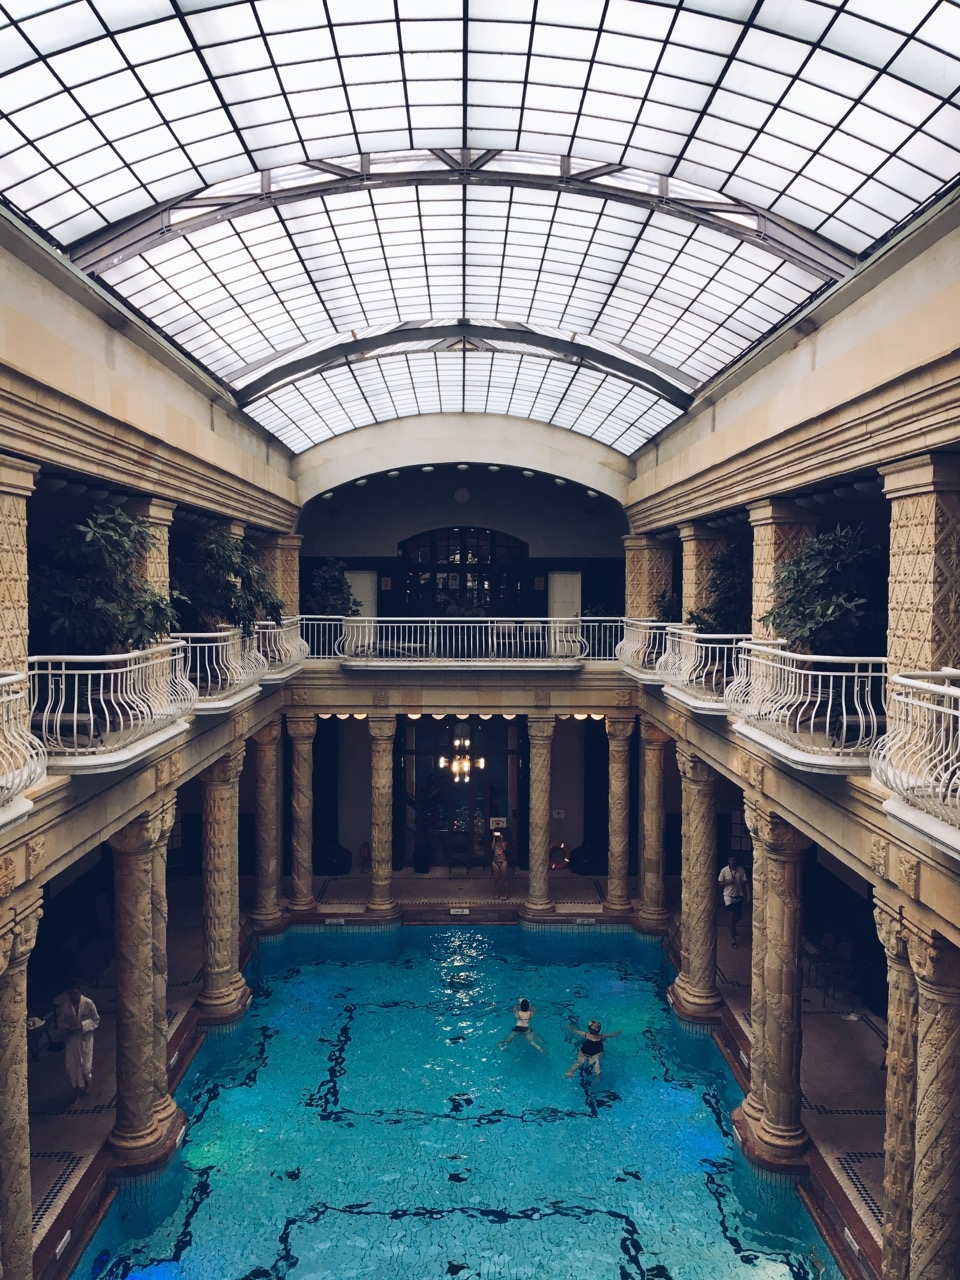 Gellert_thermal_bath